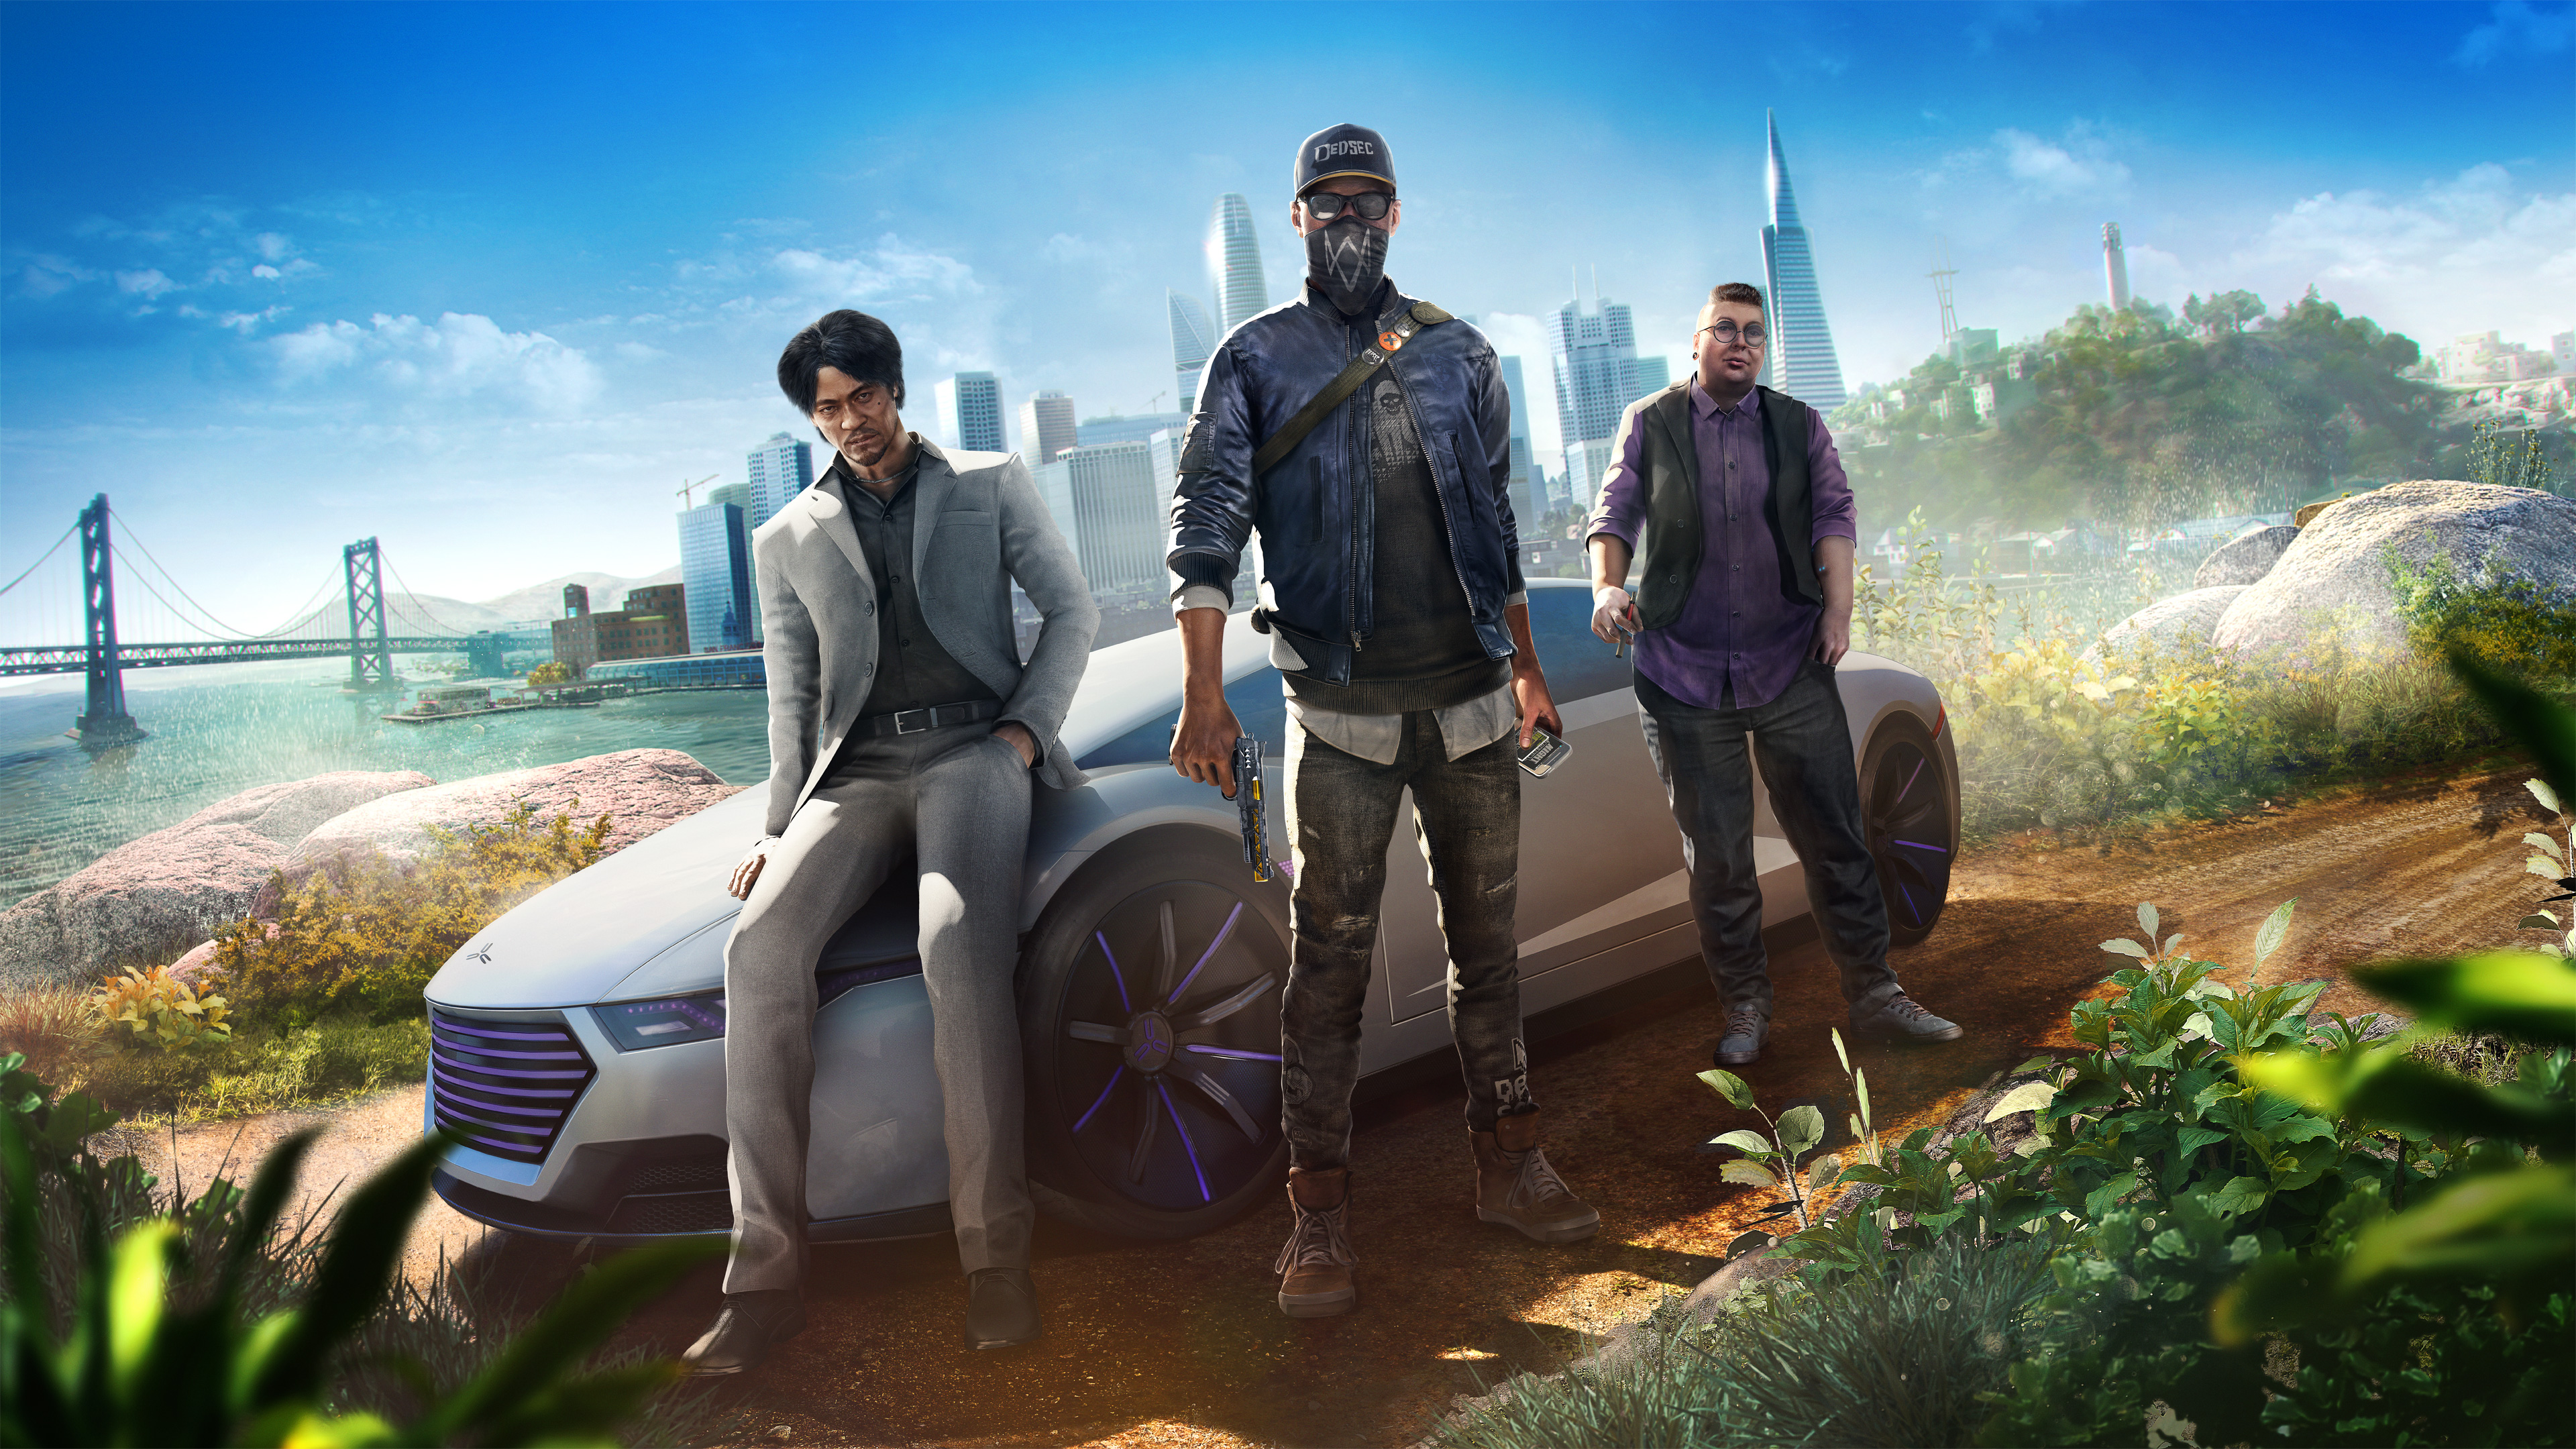 watch dogs 2 video game wallpaper background 62003